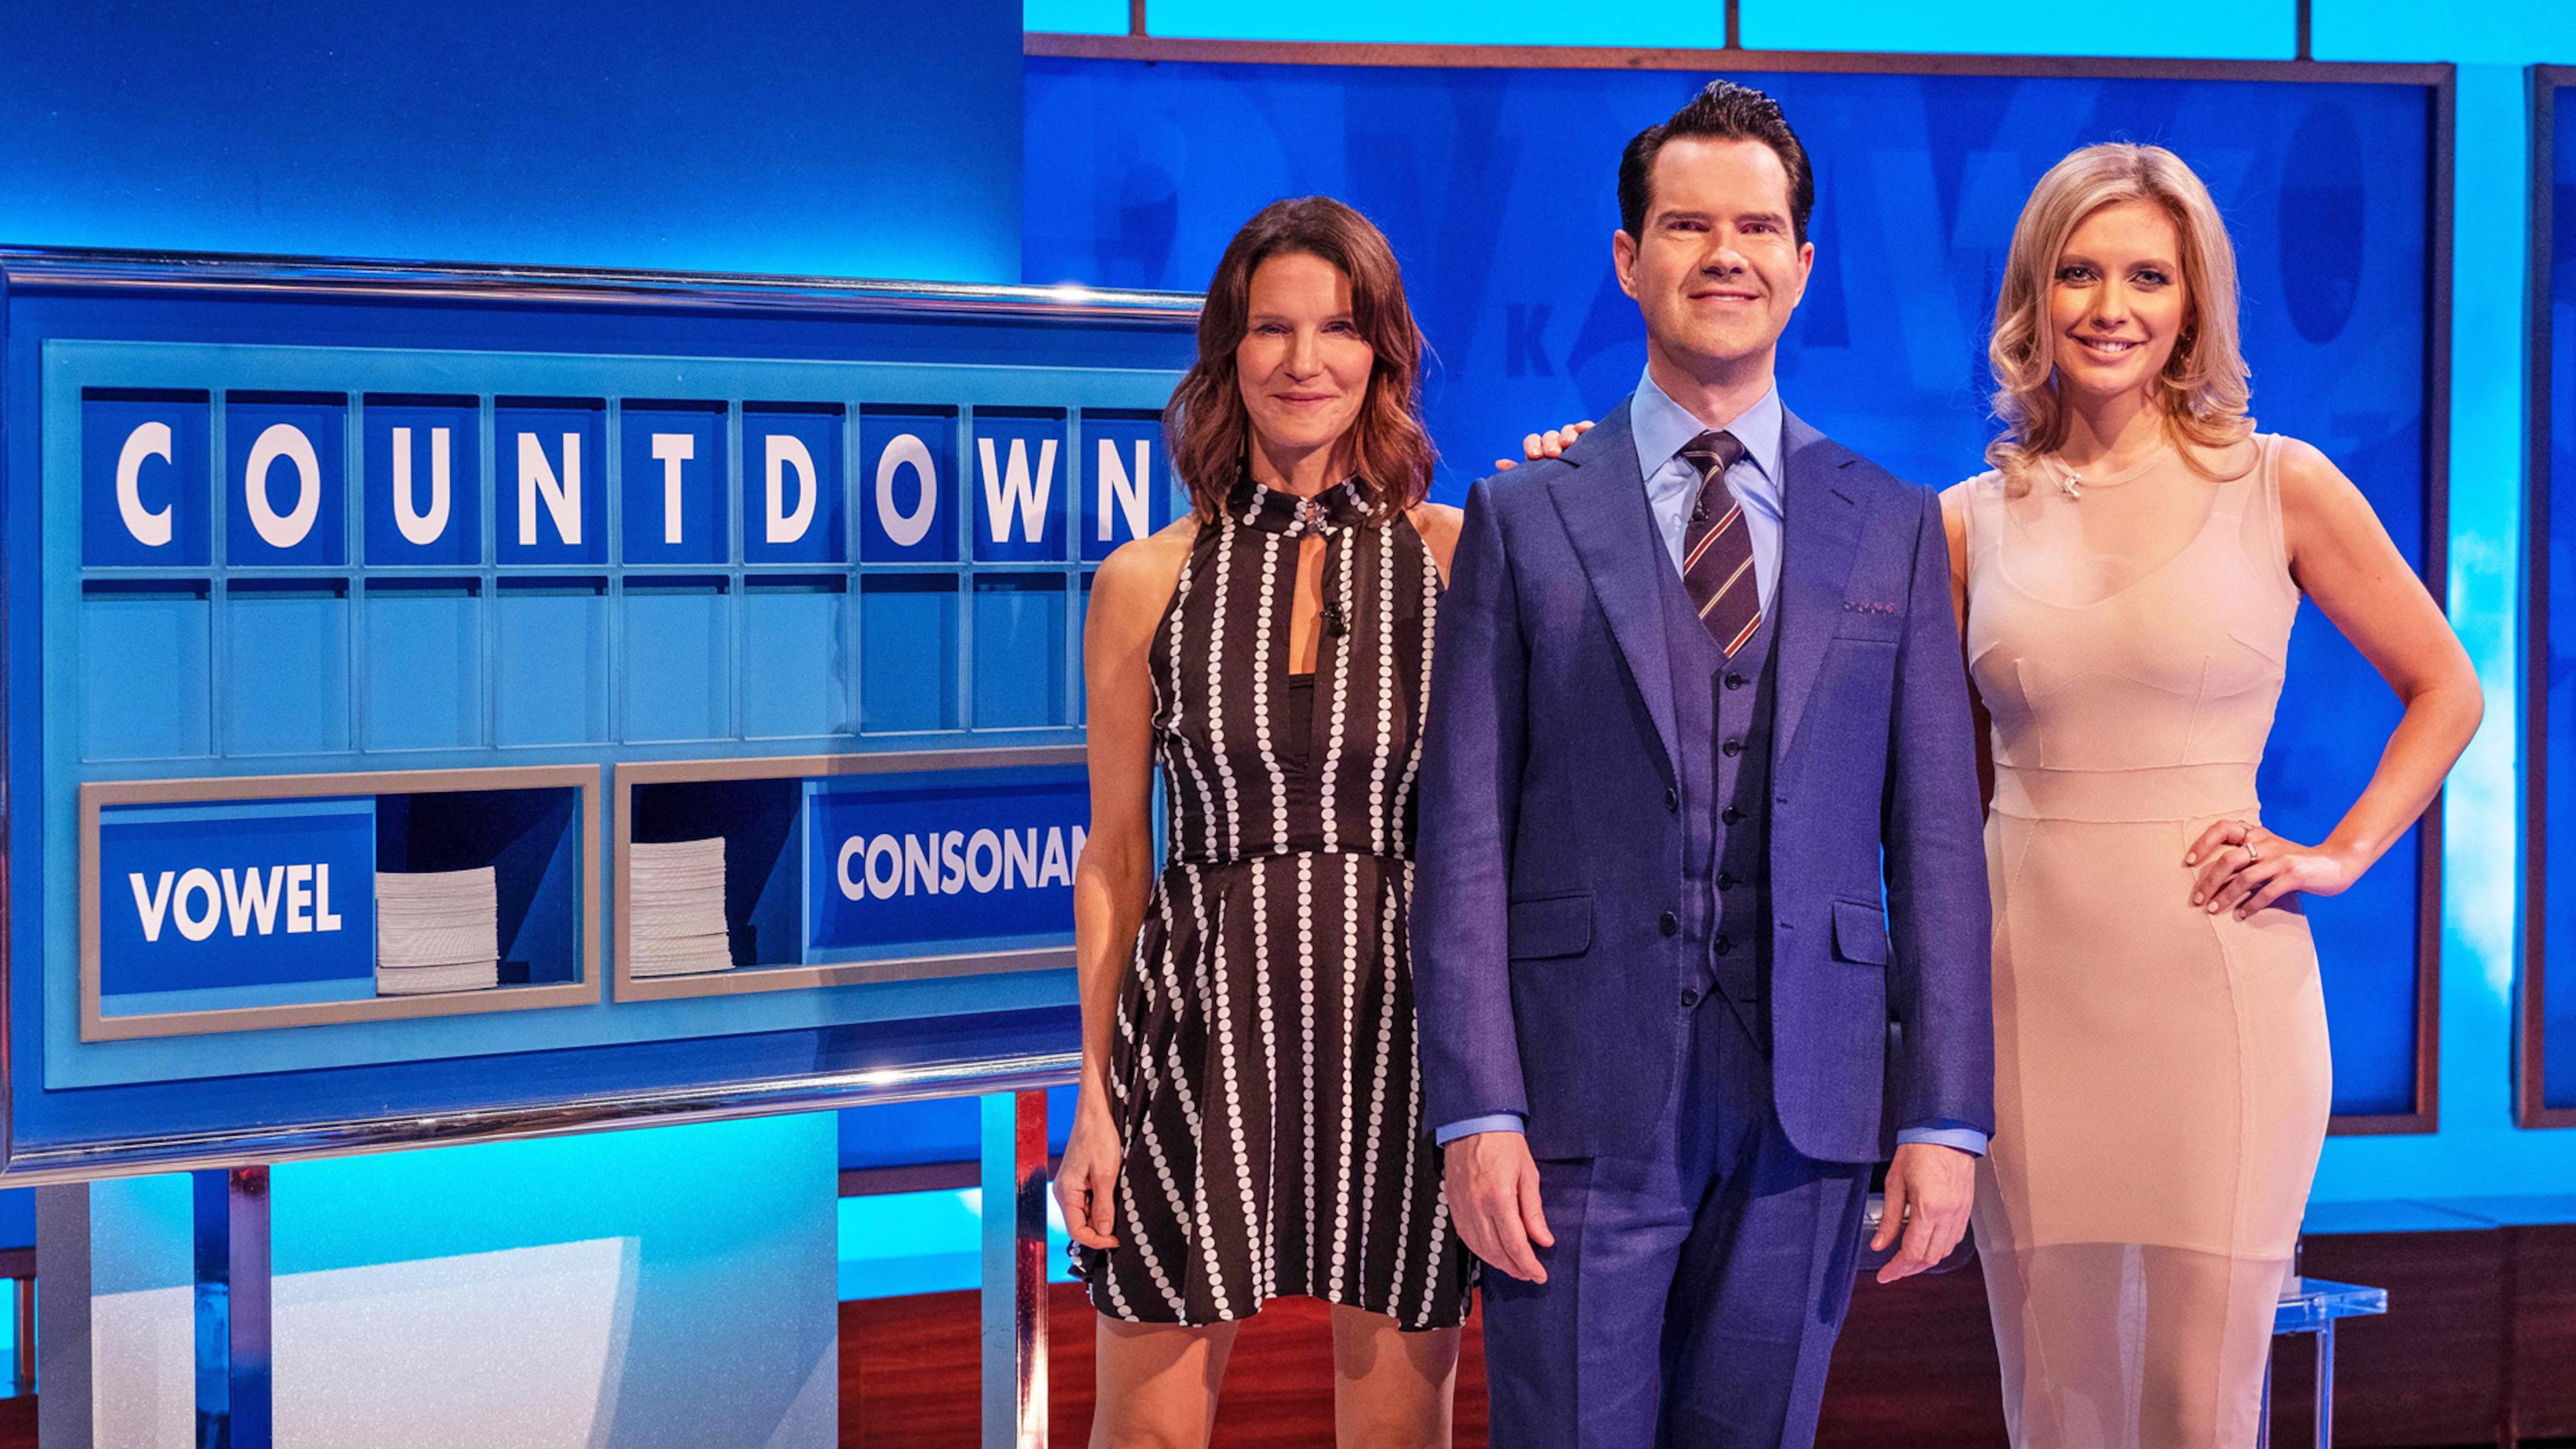 8 Out Of 10 Cats Does Countdown Christmas Special 2020 8 Out of 10 Cats Does Countdown   All 4